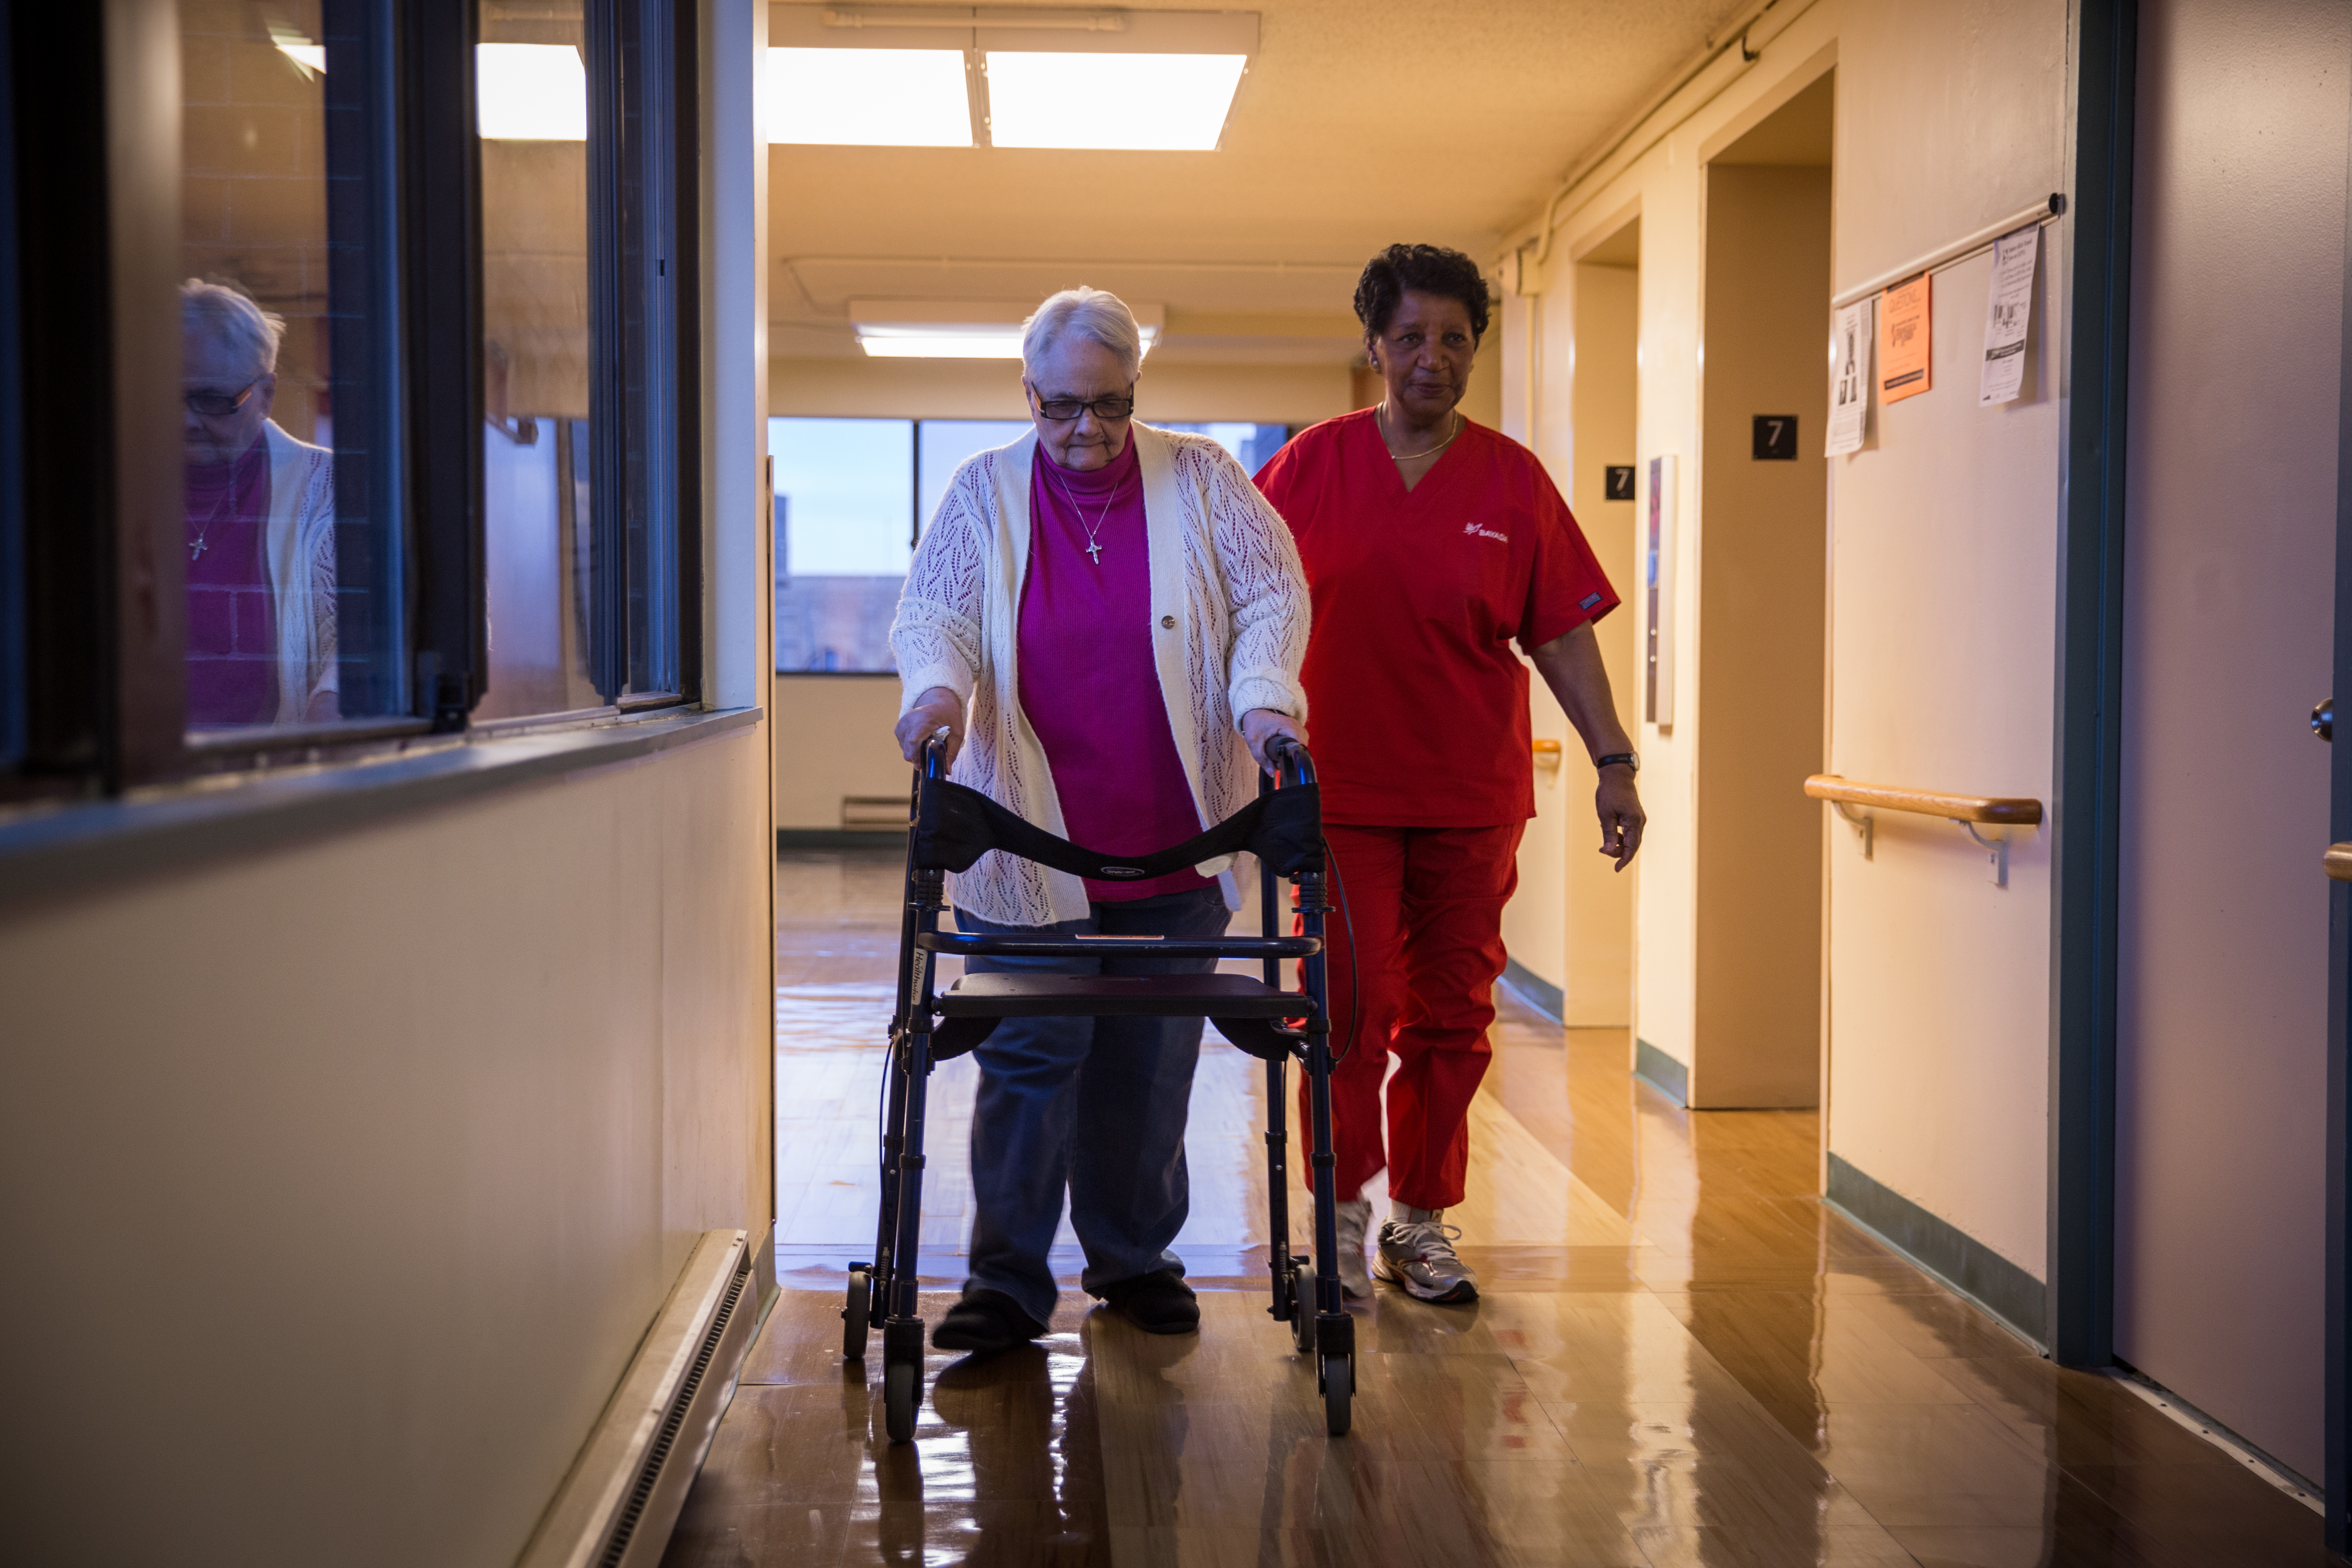 A home health aide leads her patient down a hallway.